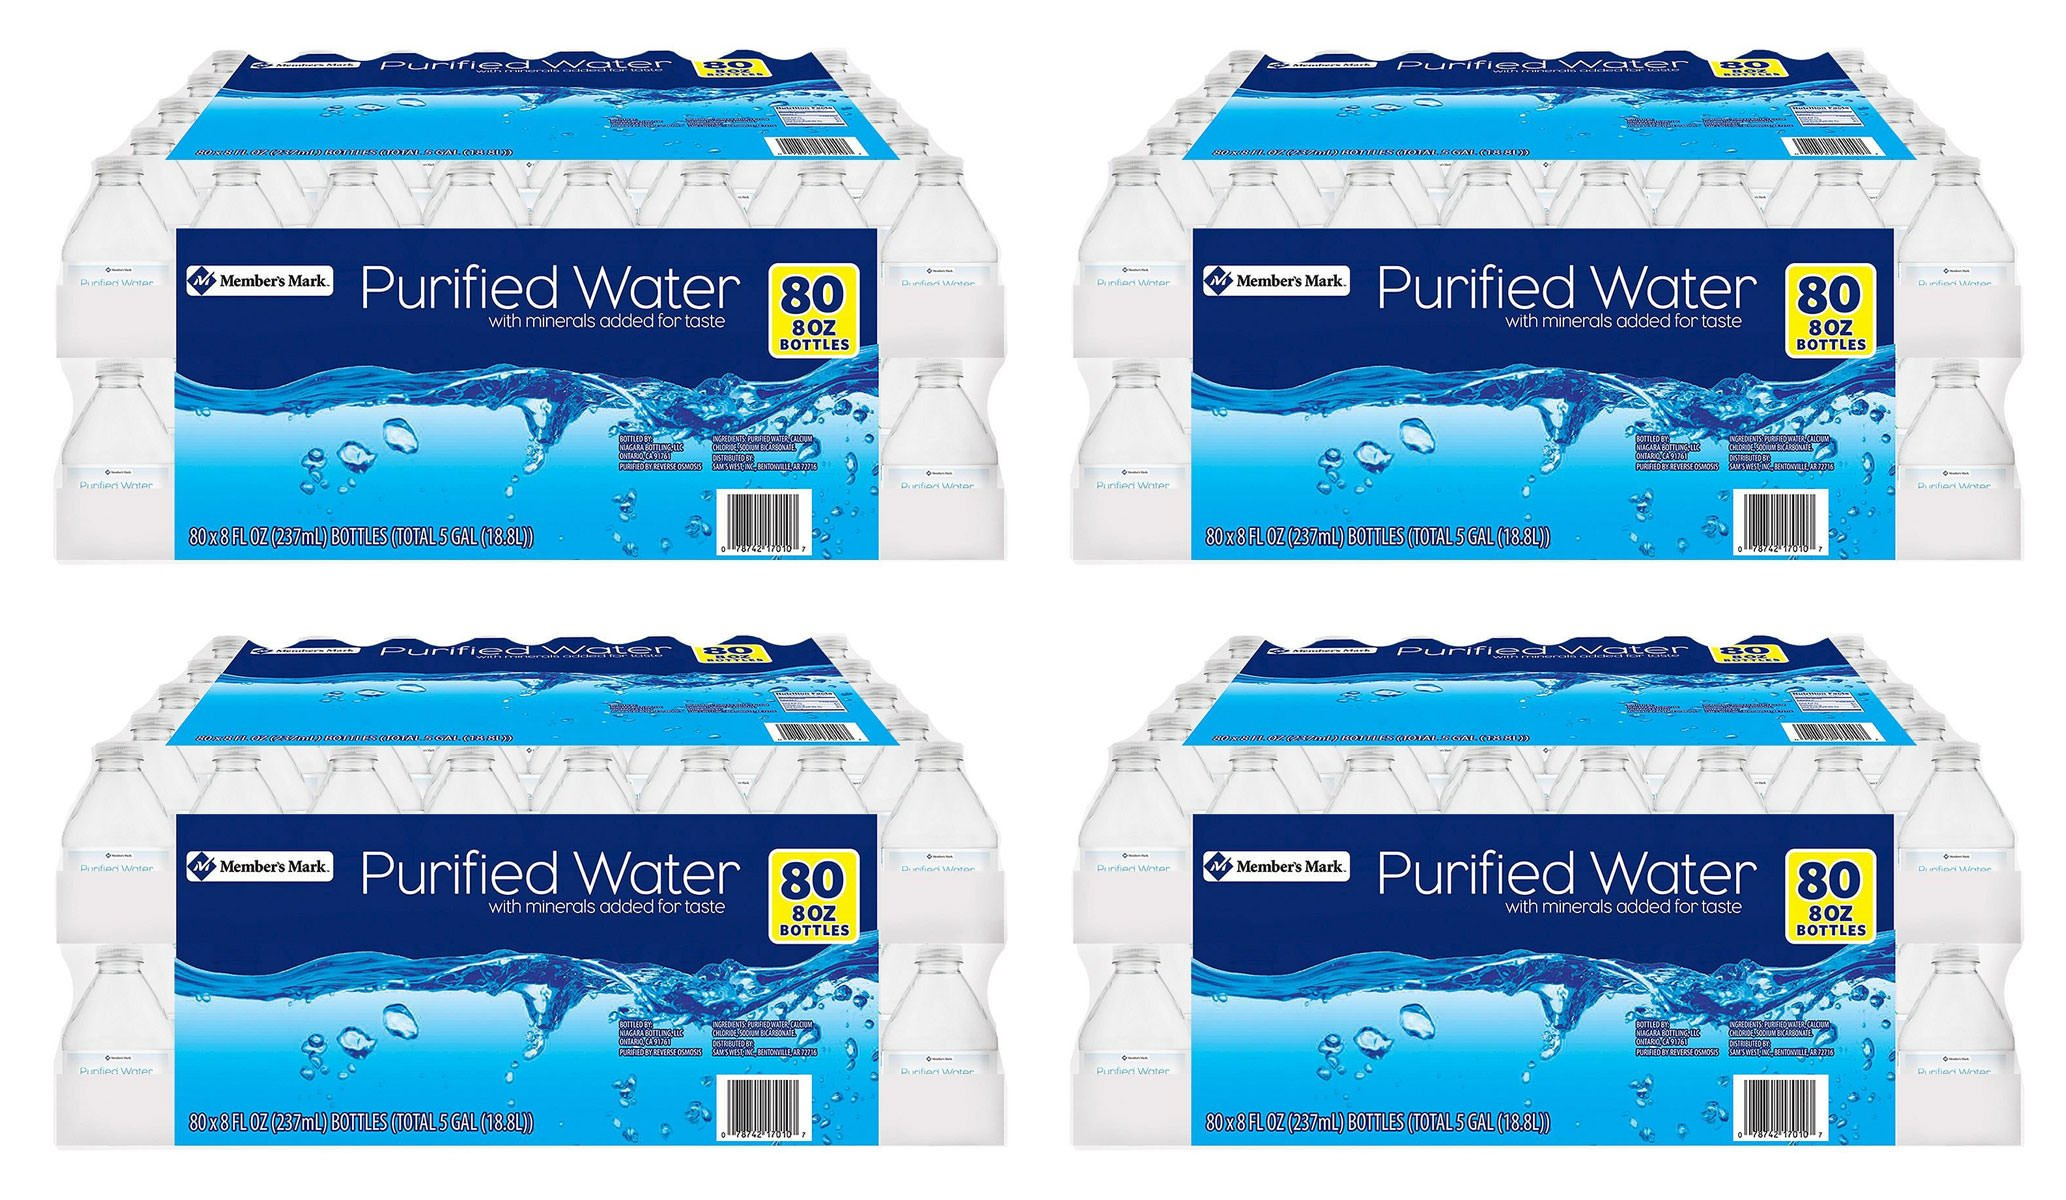 Member's Mark EXKT Purified Water, 4 Cases of 80 Count